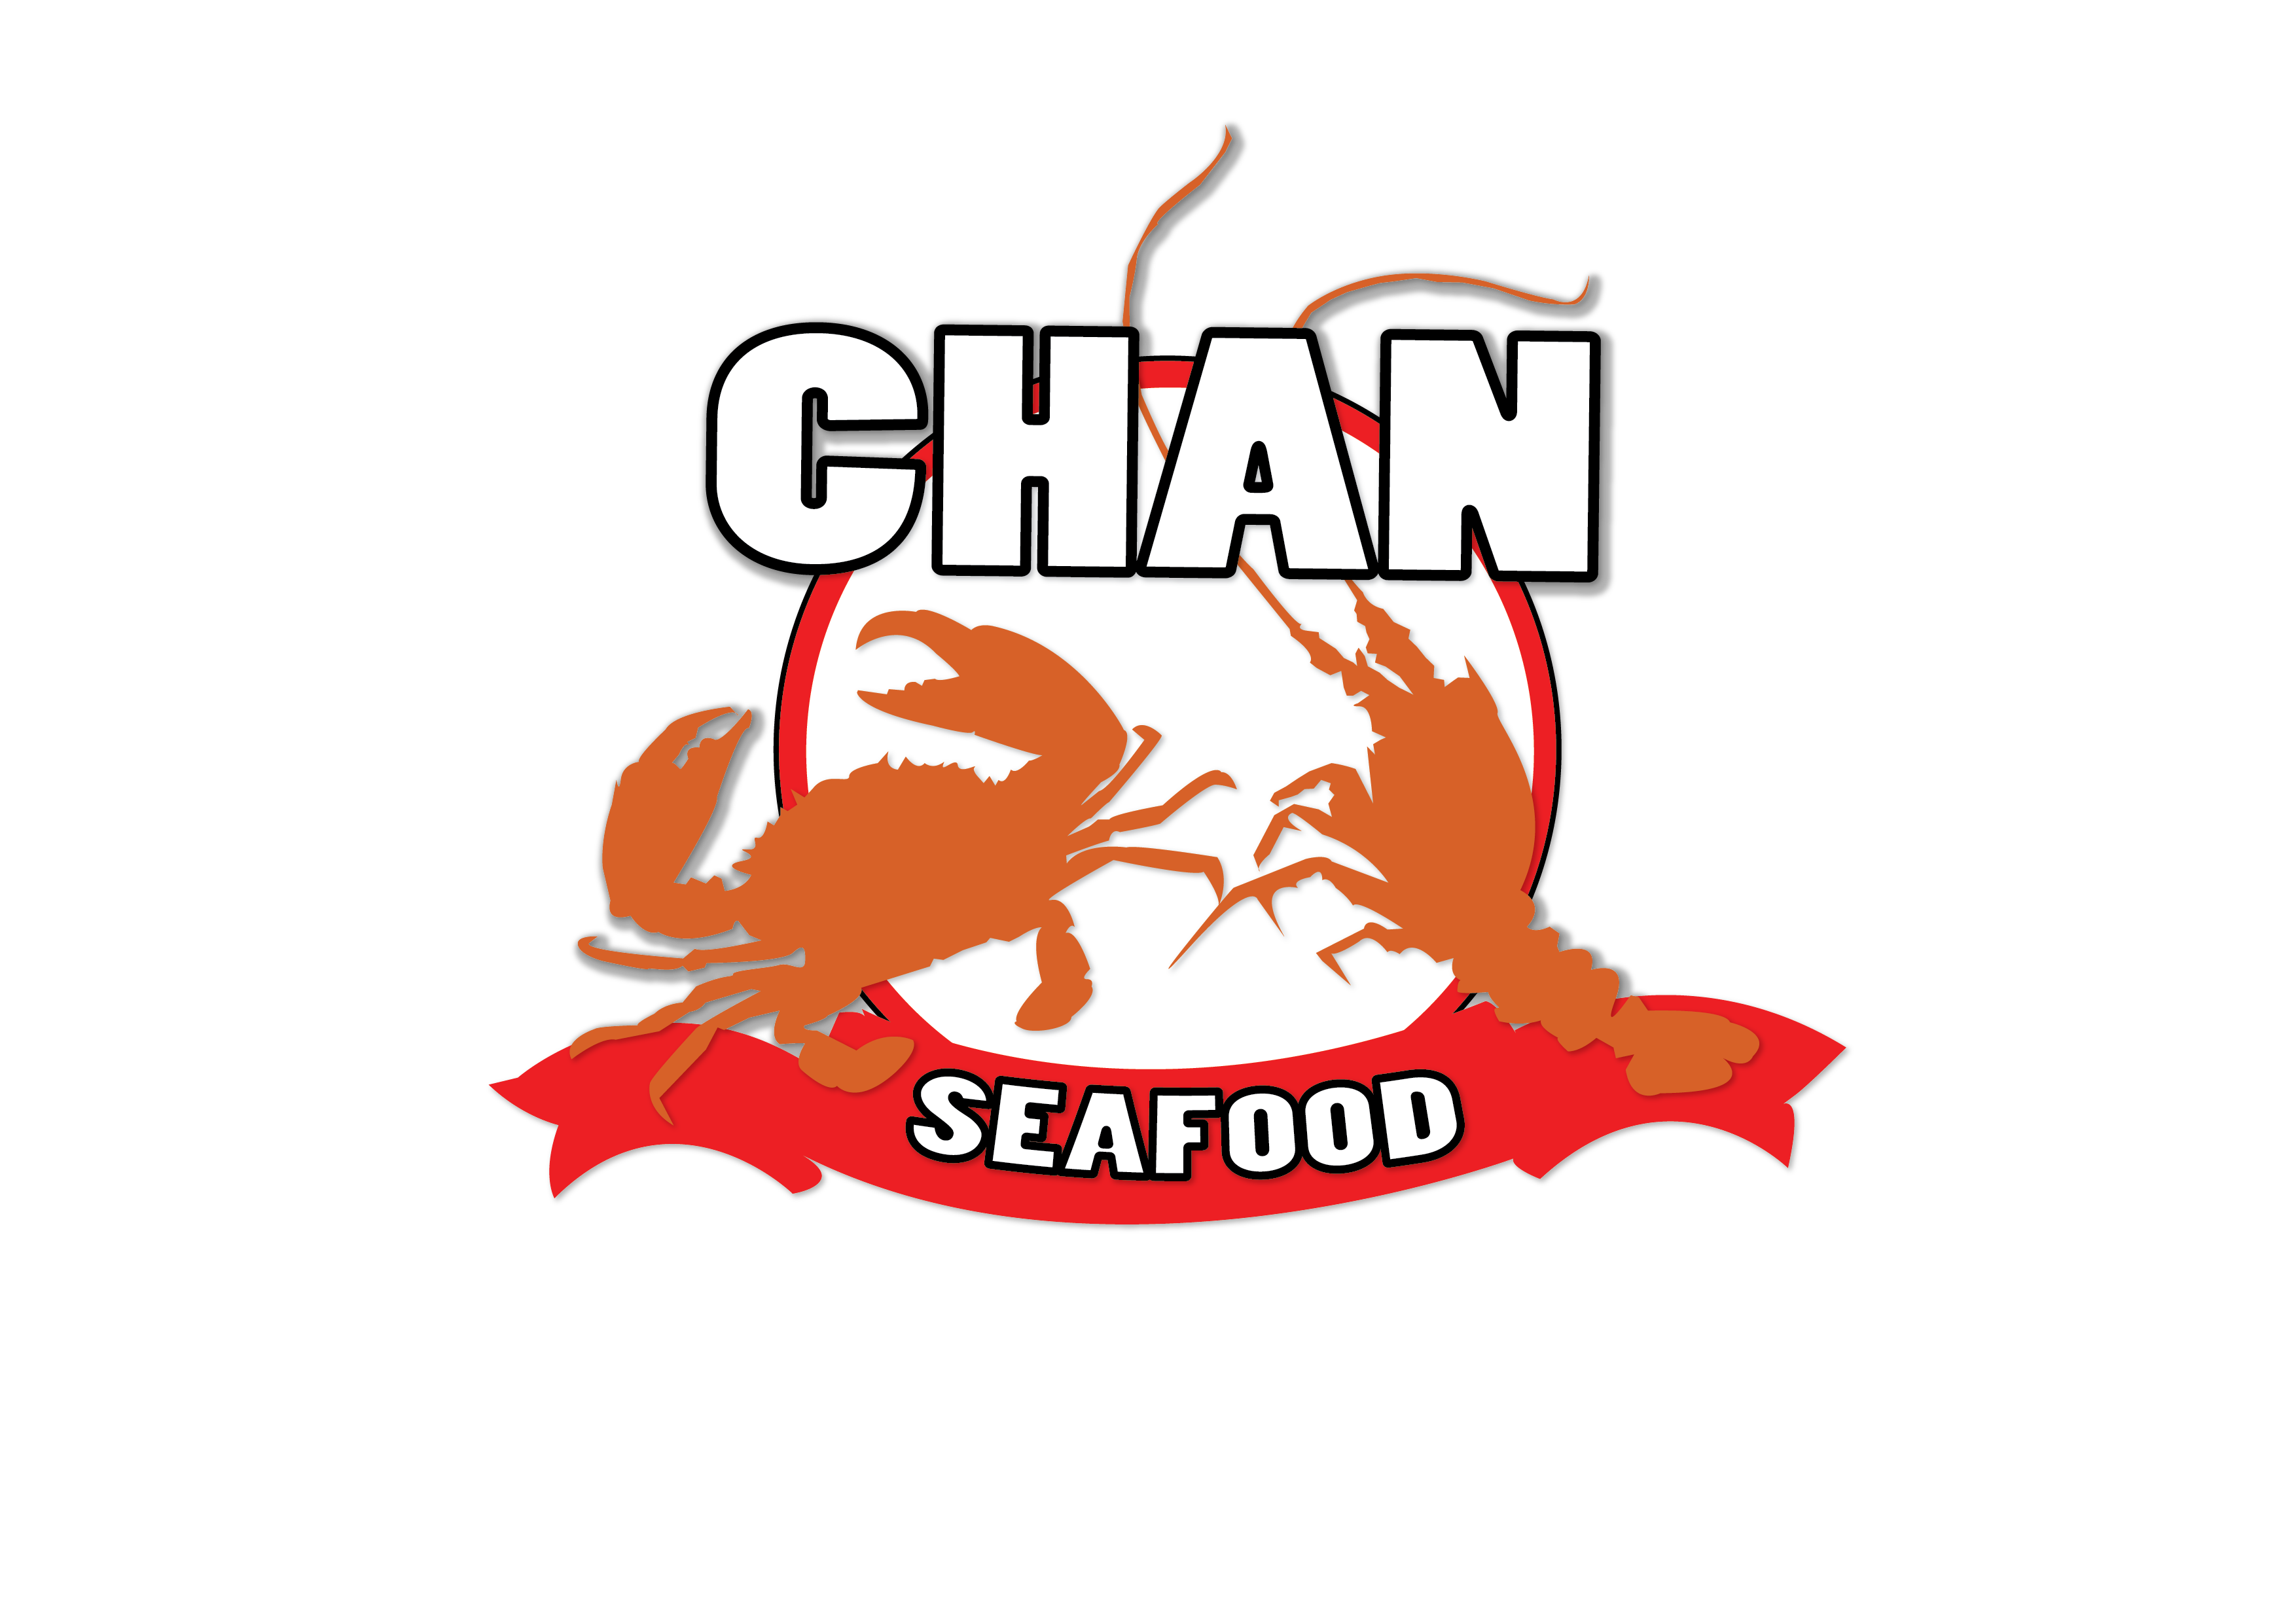 www.chanseafood.com